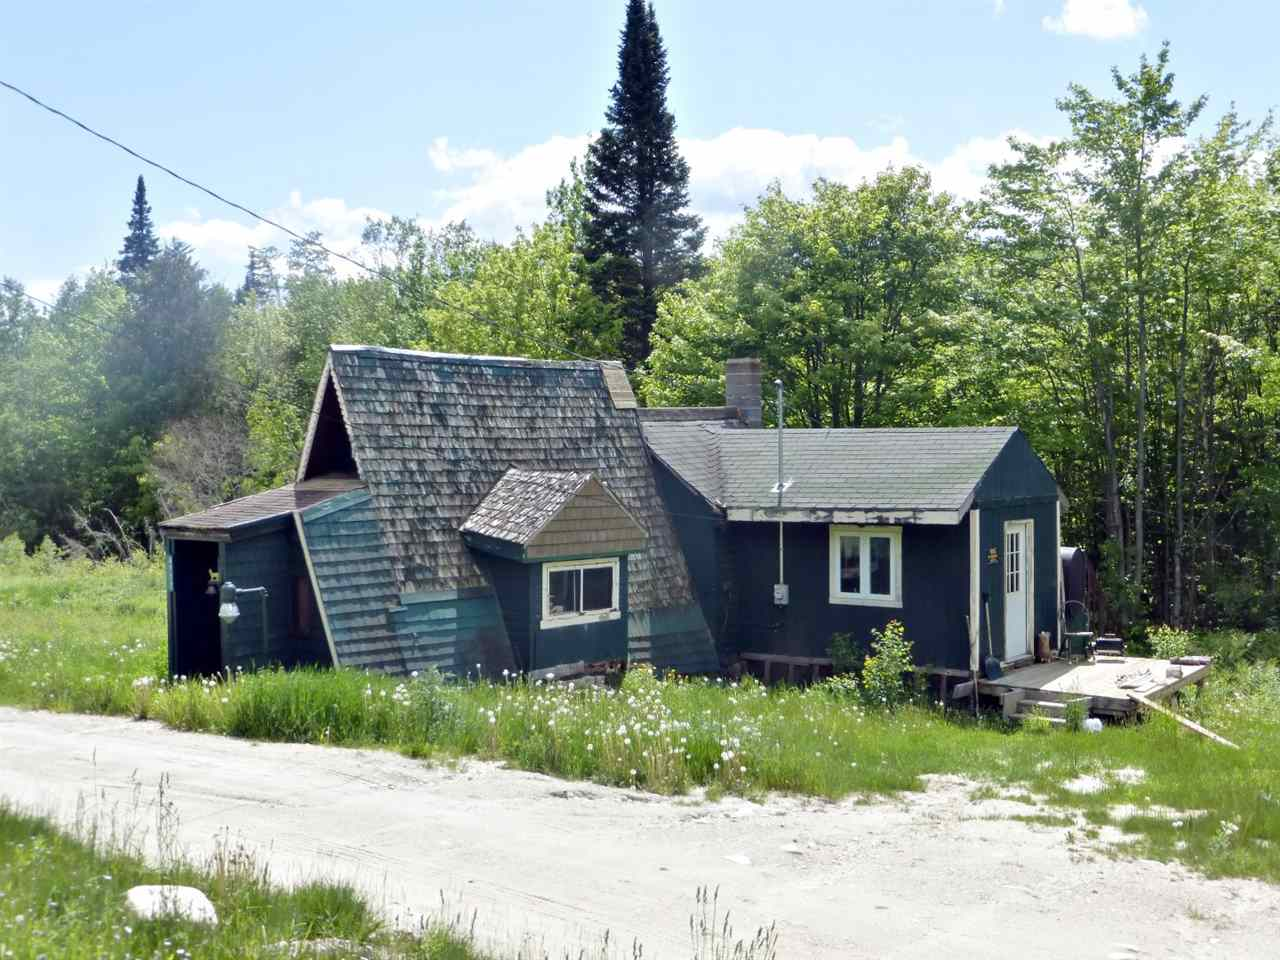 Newark VT Real Estate for Sale | Homes, Condos, Land, and Commercial